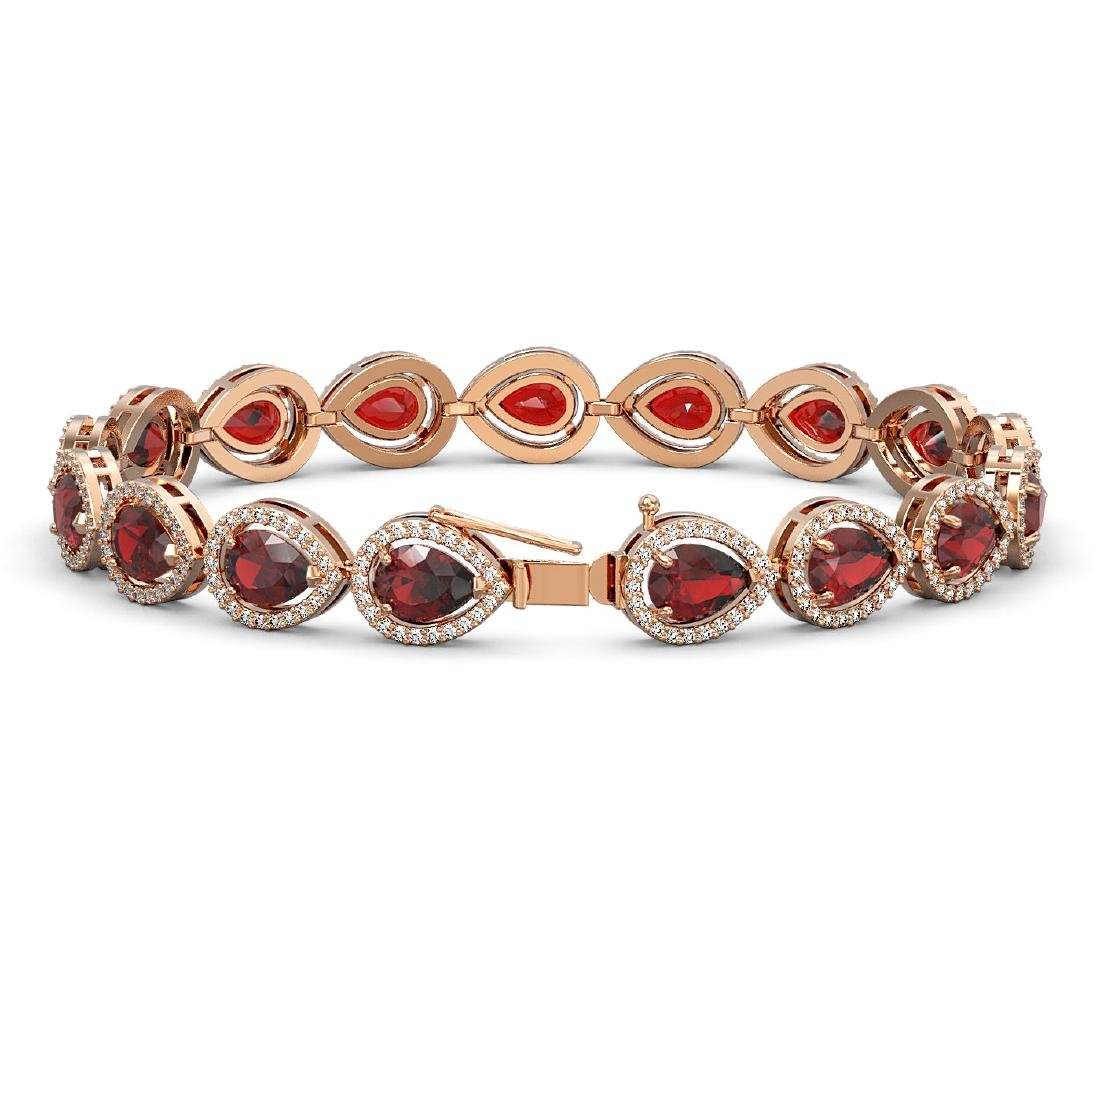 17.44 CTW Garnet & Diamond Halo Bracelet 10K Rose Gold - 2